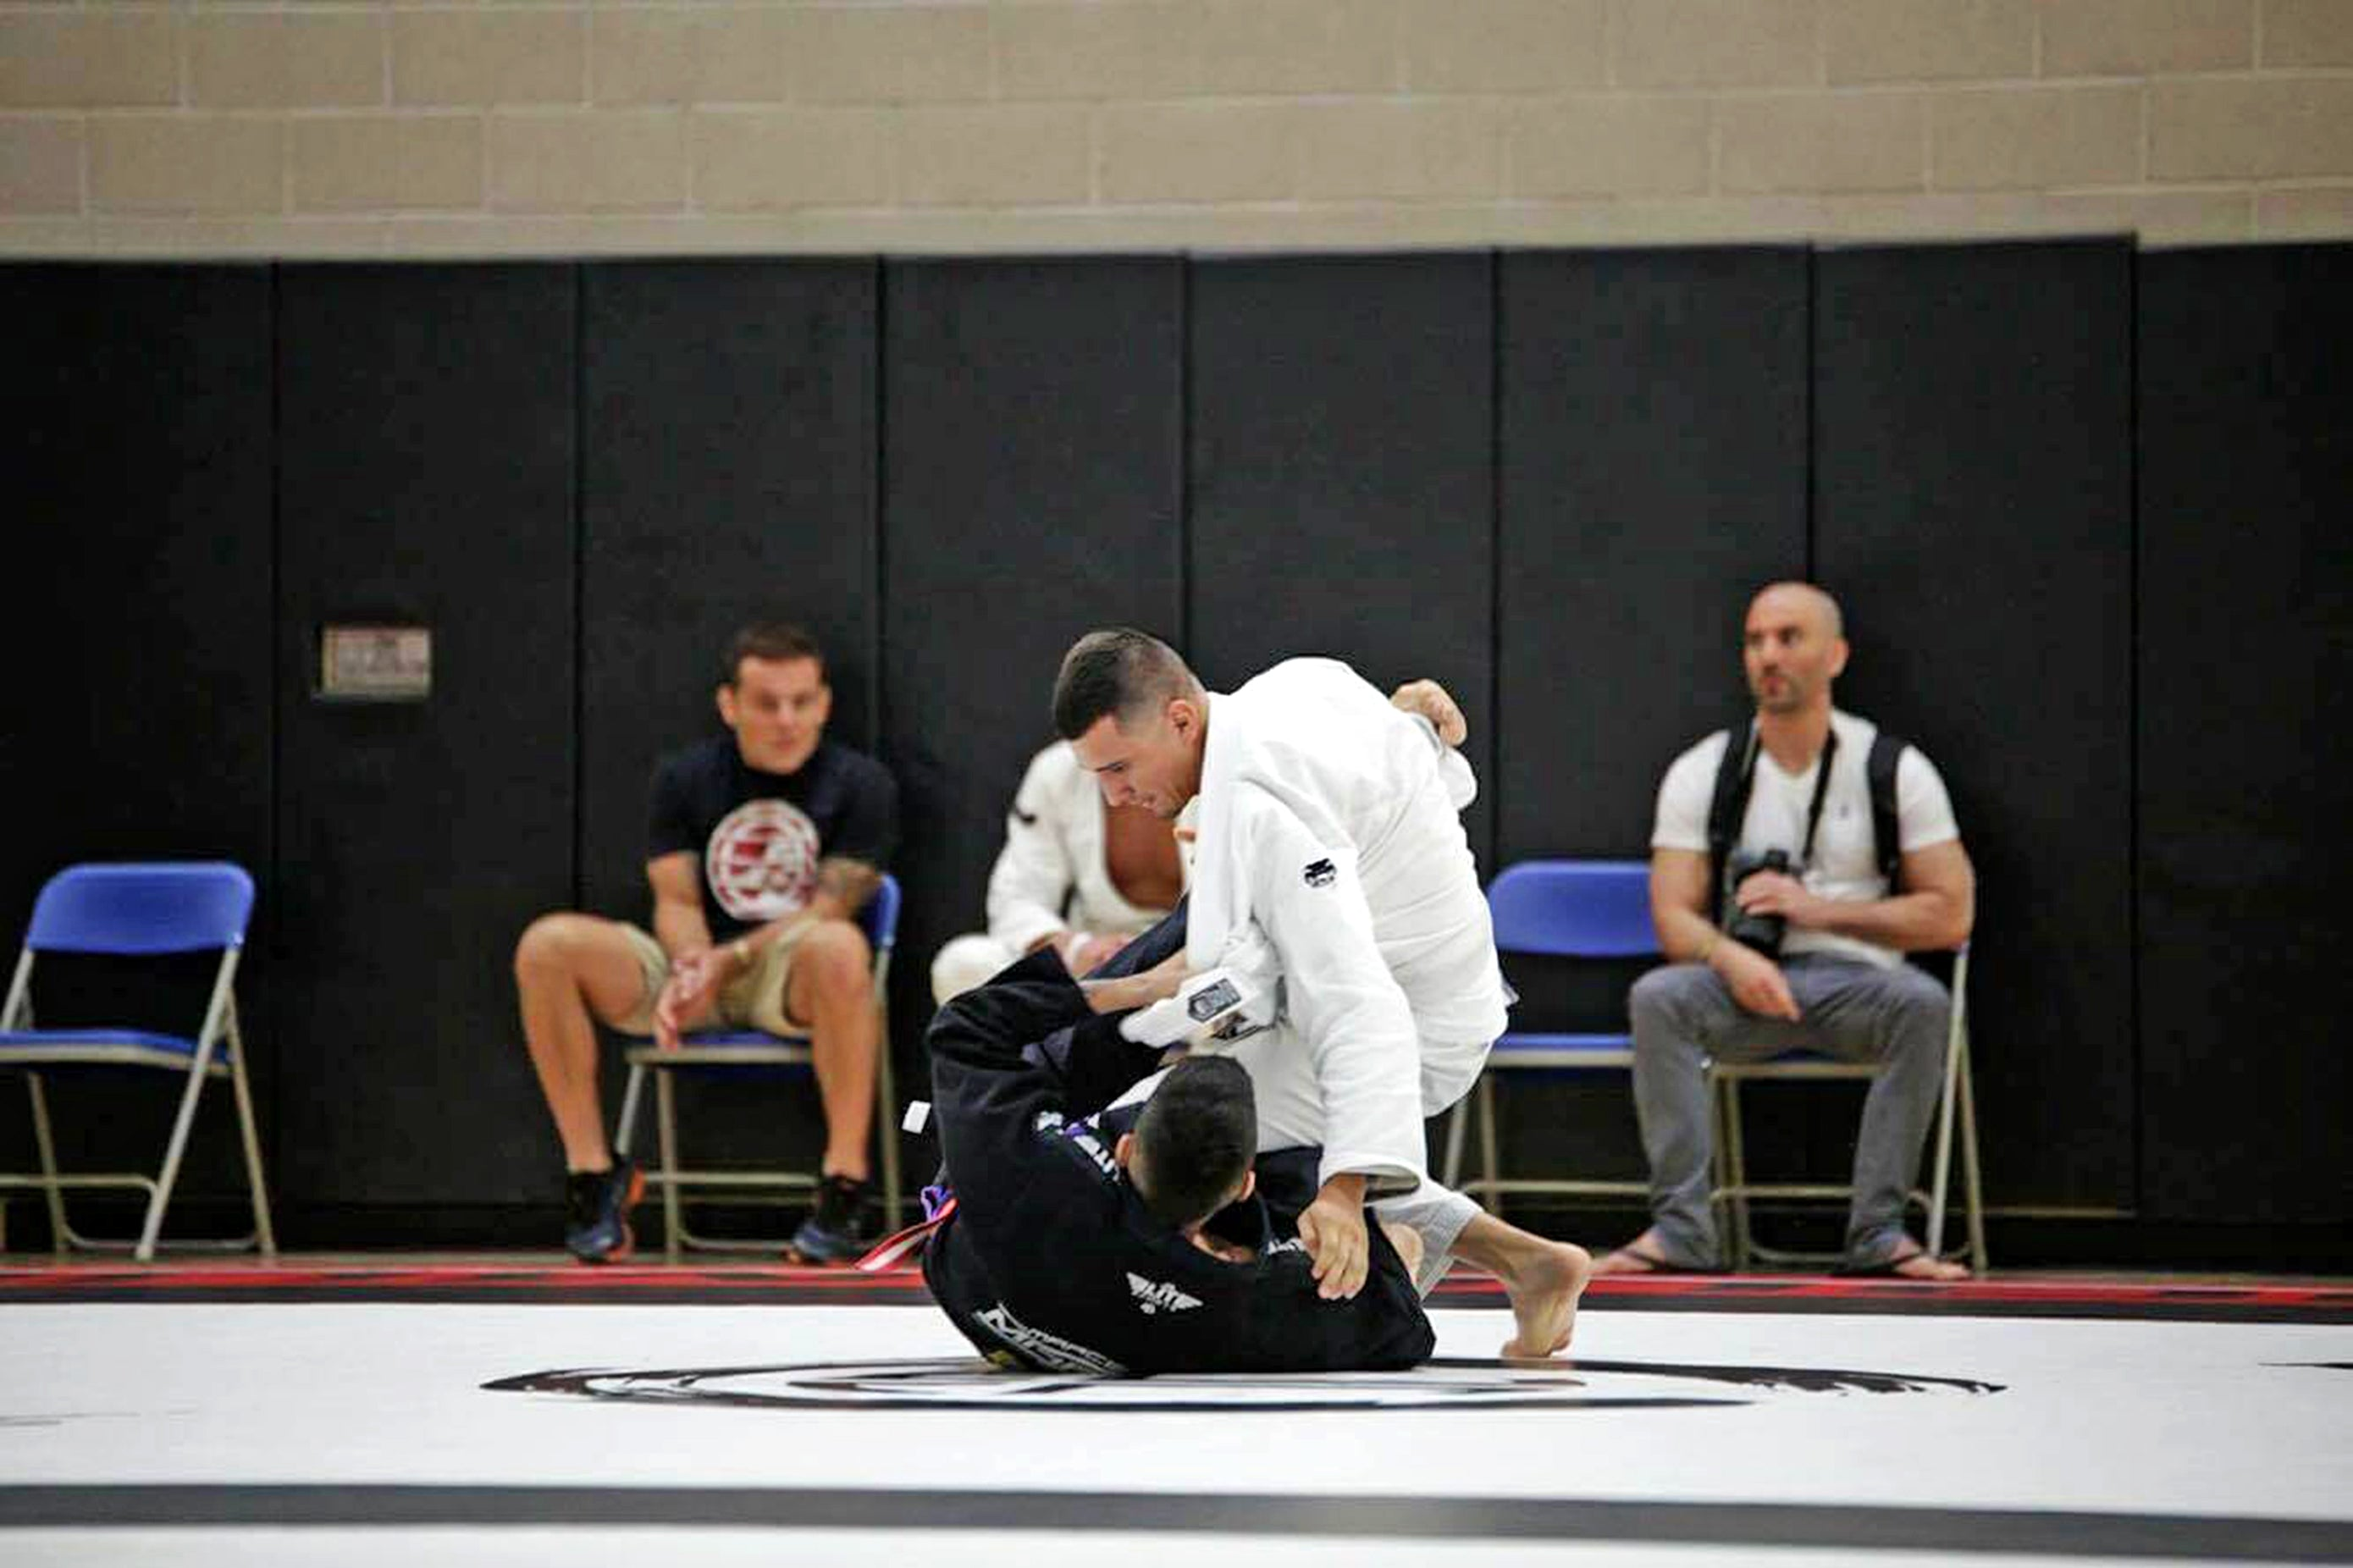 Elite Sports Team Elite Bjj Fighter Yves Luis Robles Image4